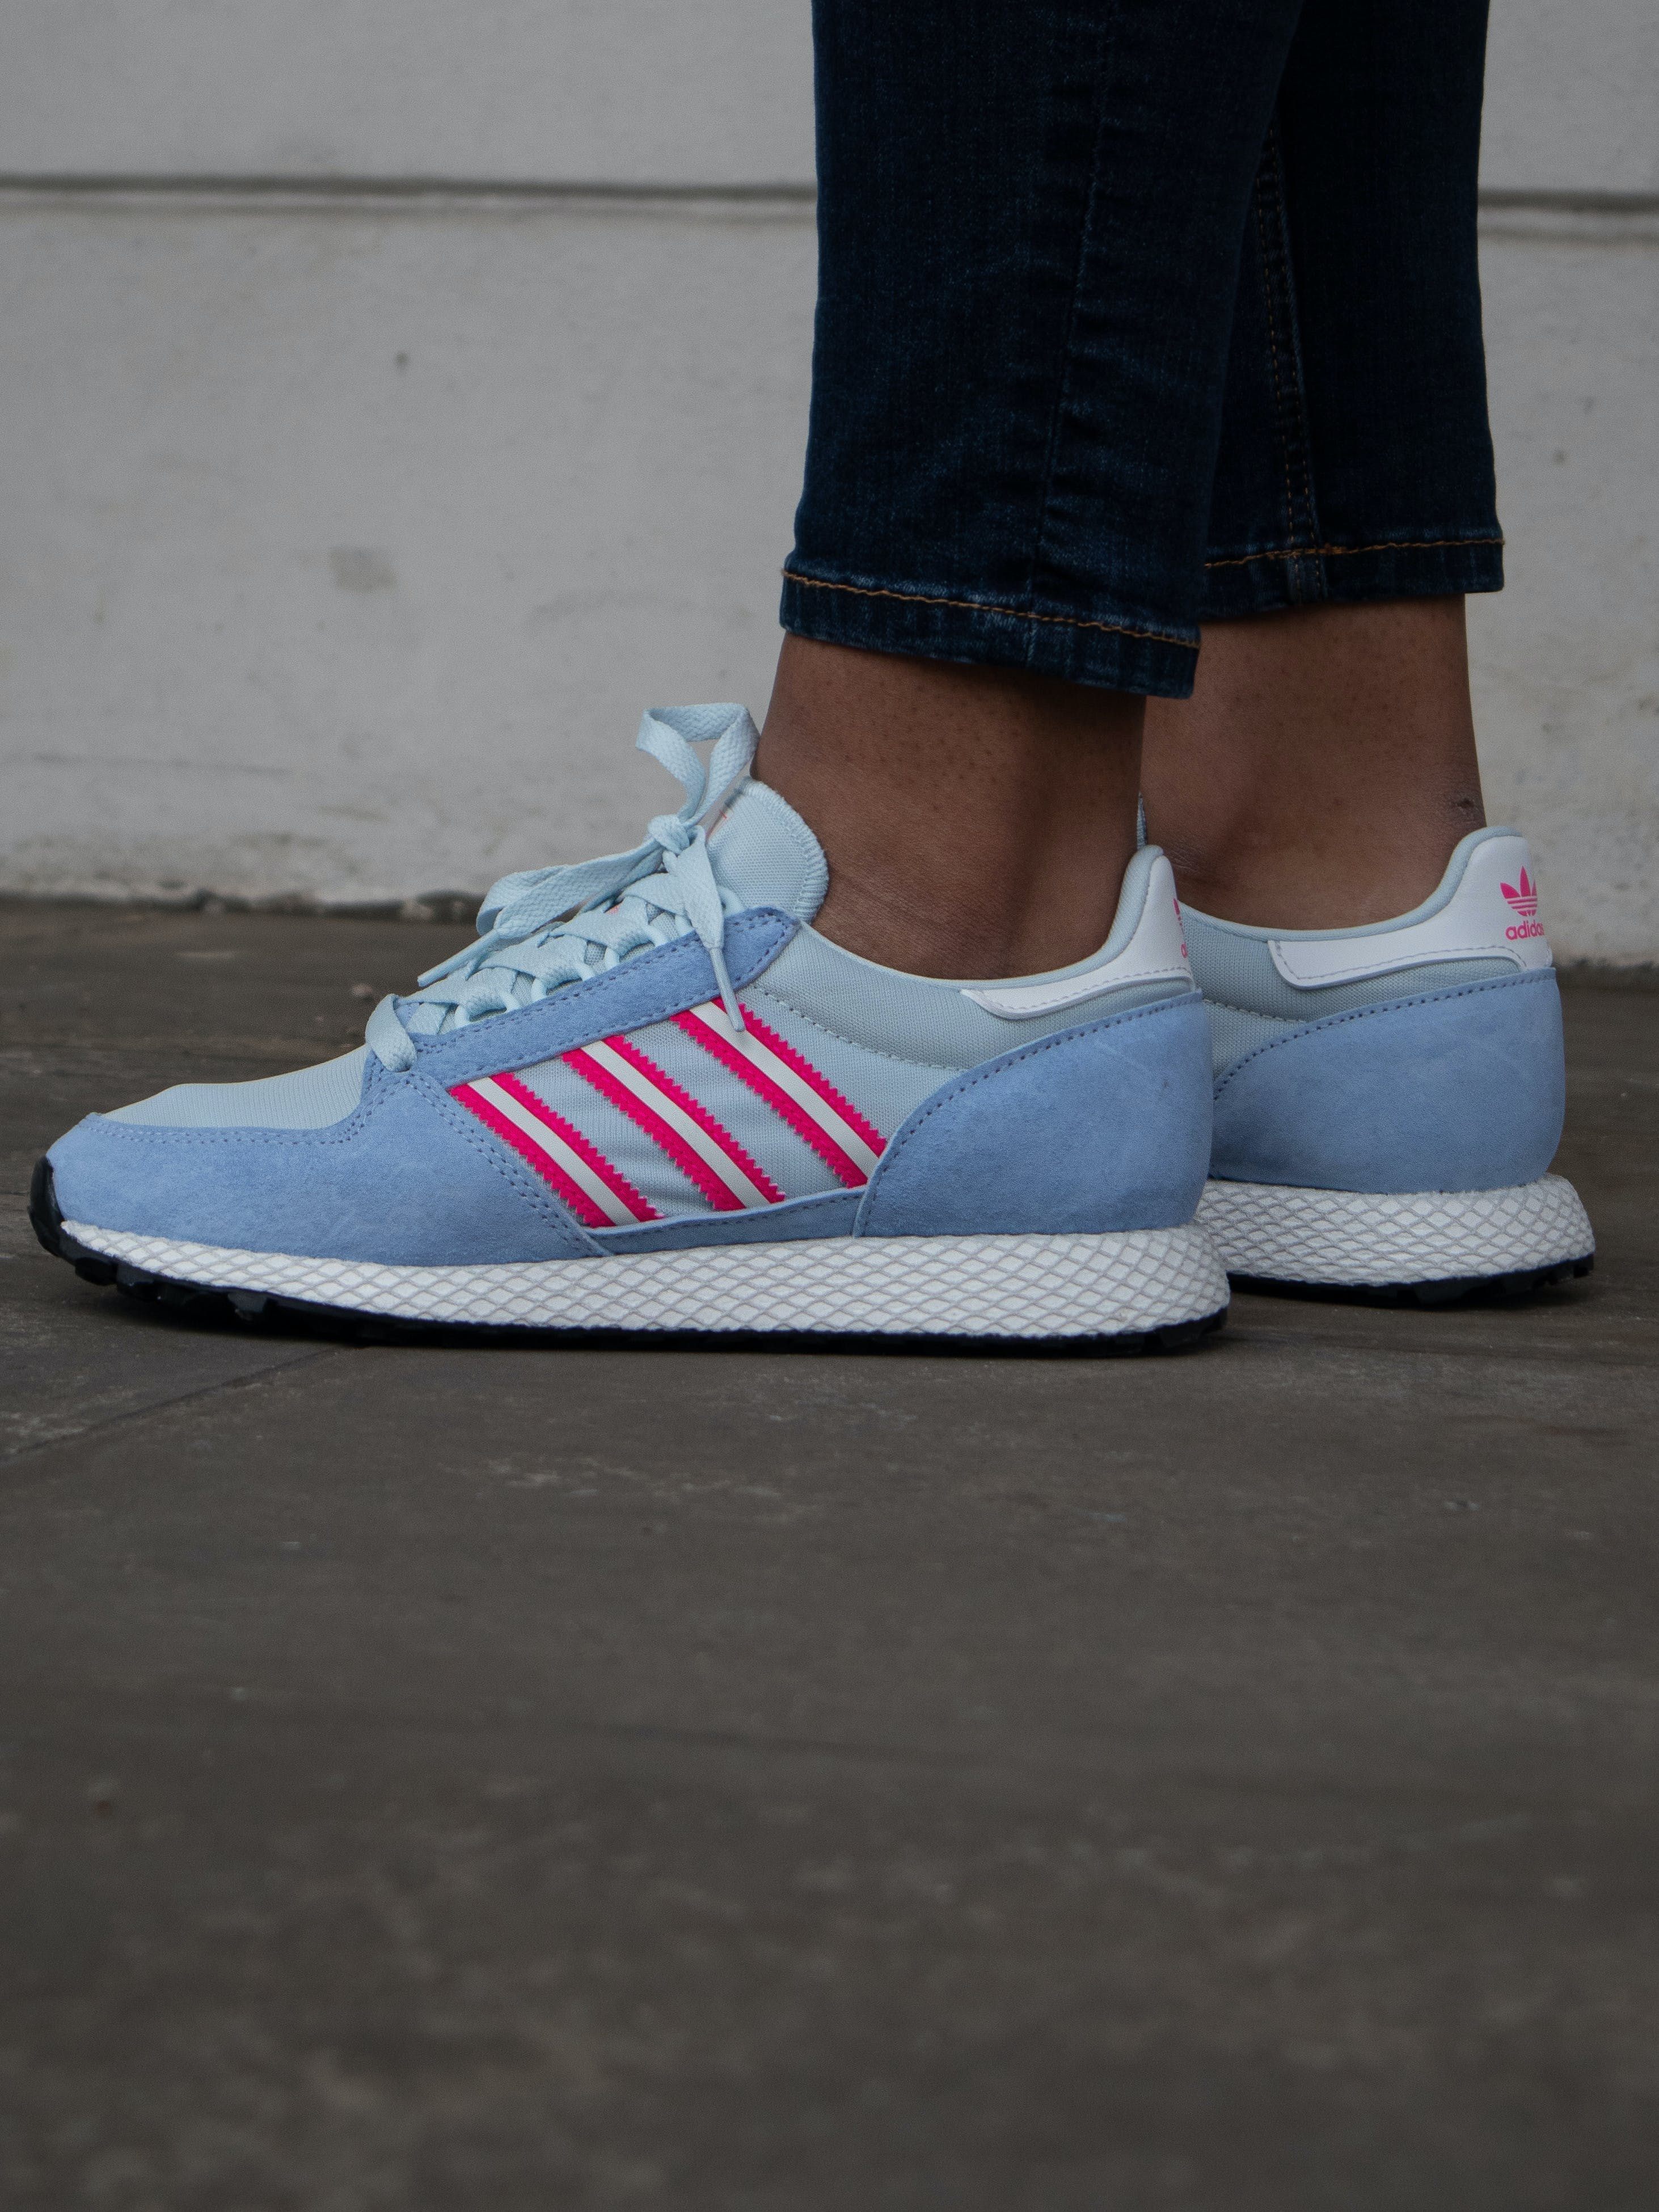 Adidas Forest Grove Periwinkle - Sizerun 36 - 42